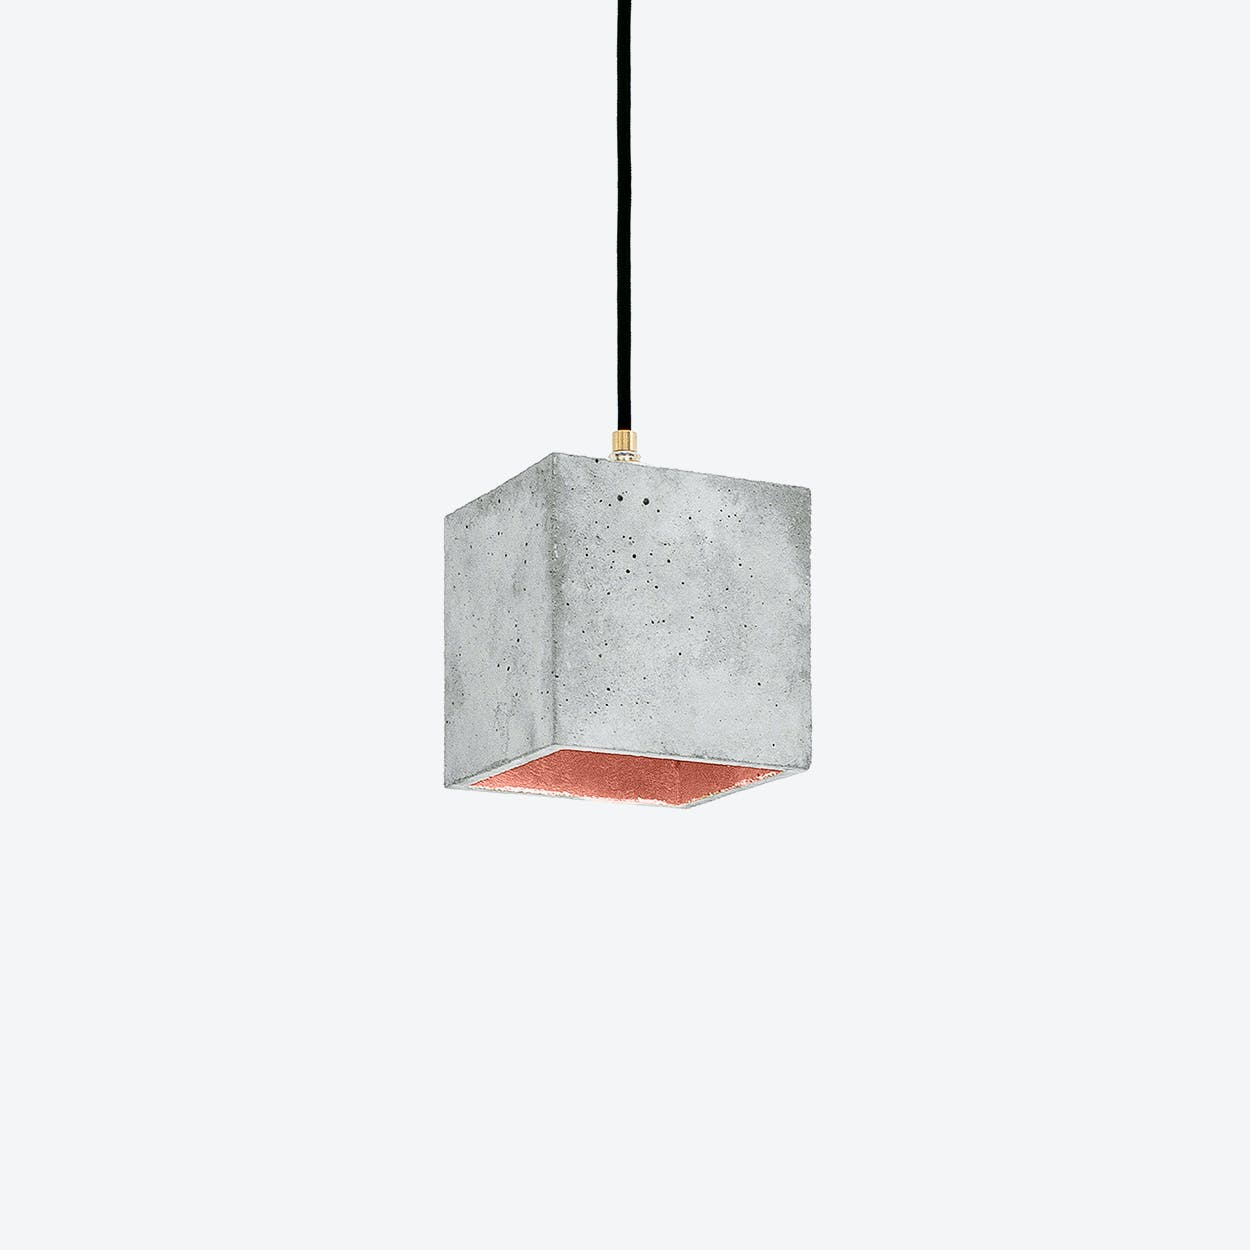 Concrete Pendant Light Cubic B1 in Light Grey and Copper